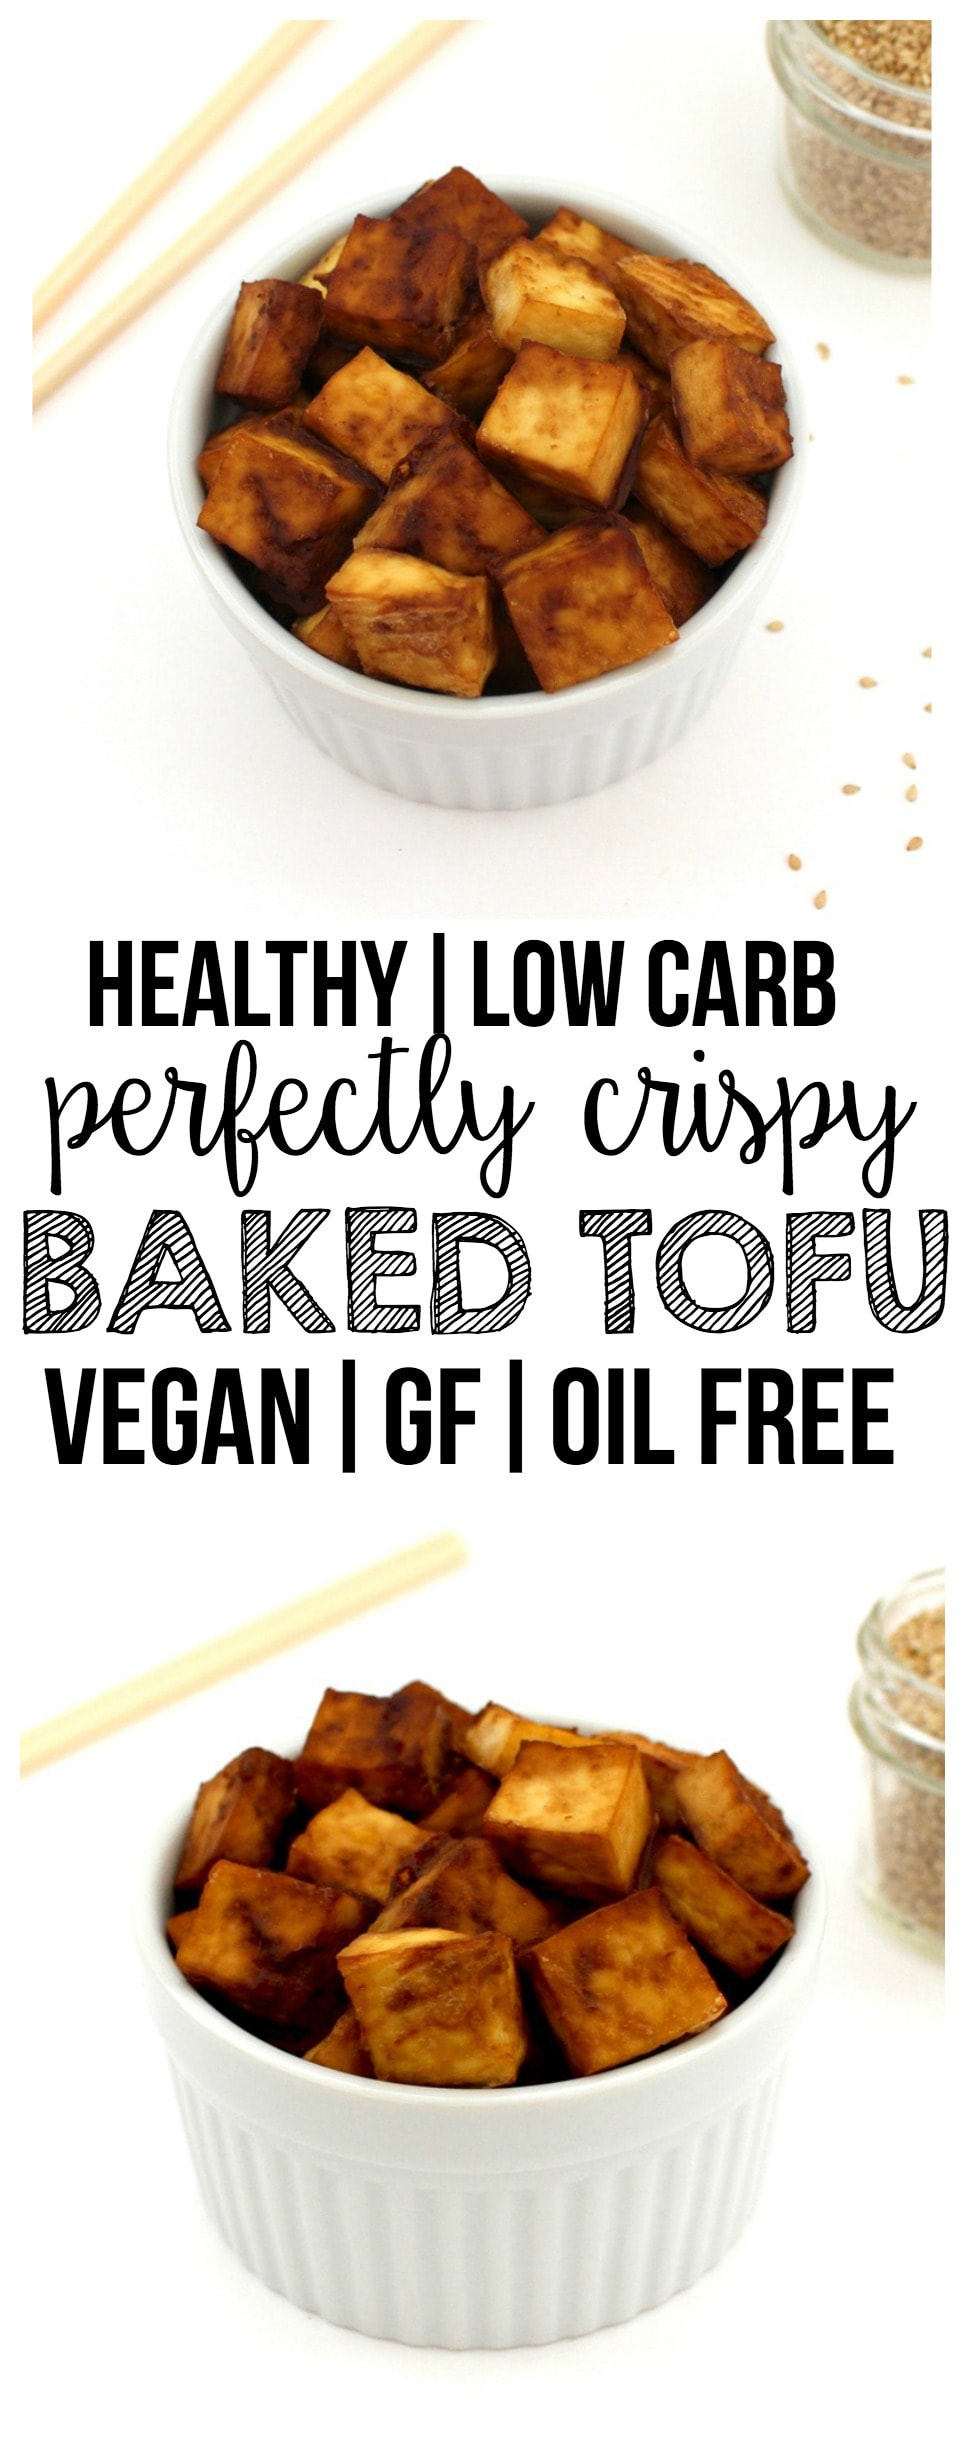 This Perfectly Crispy Baked Tofu is AMAZING! Add it to salads, stir fry, or eat it by itself. So yummy! Keto, vegan, gluten-free, low-carb, dairy-free & oil-free.